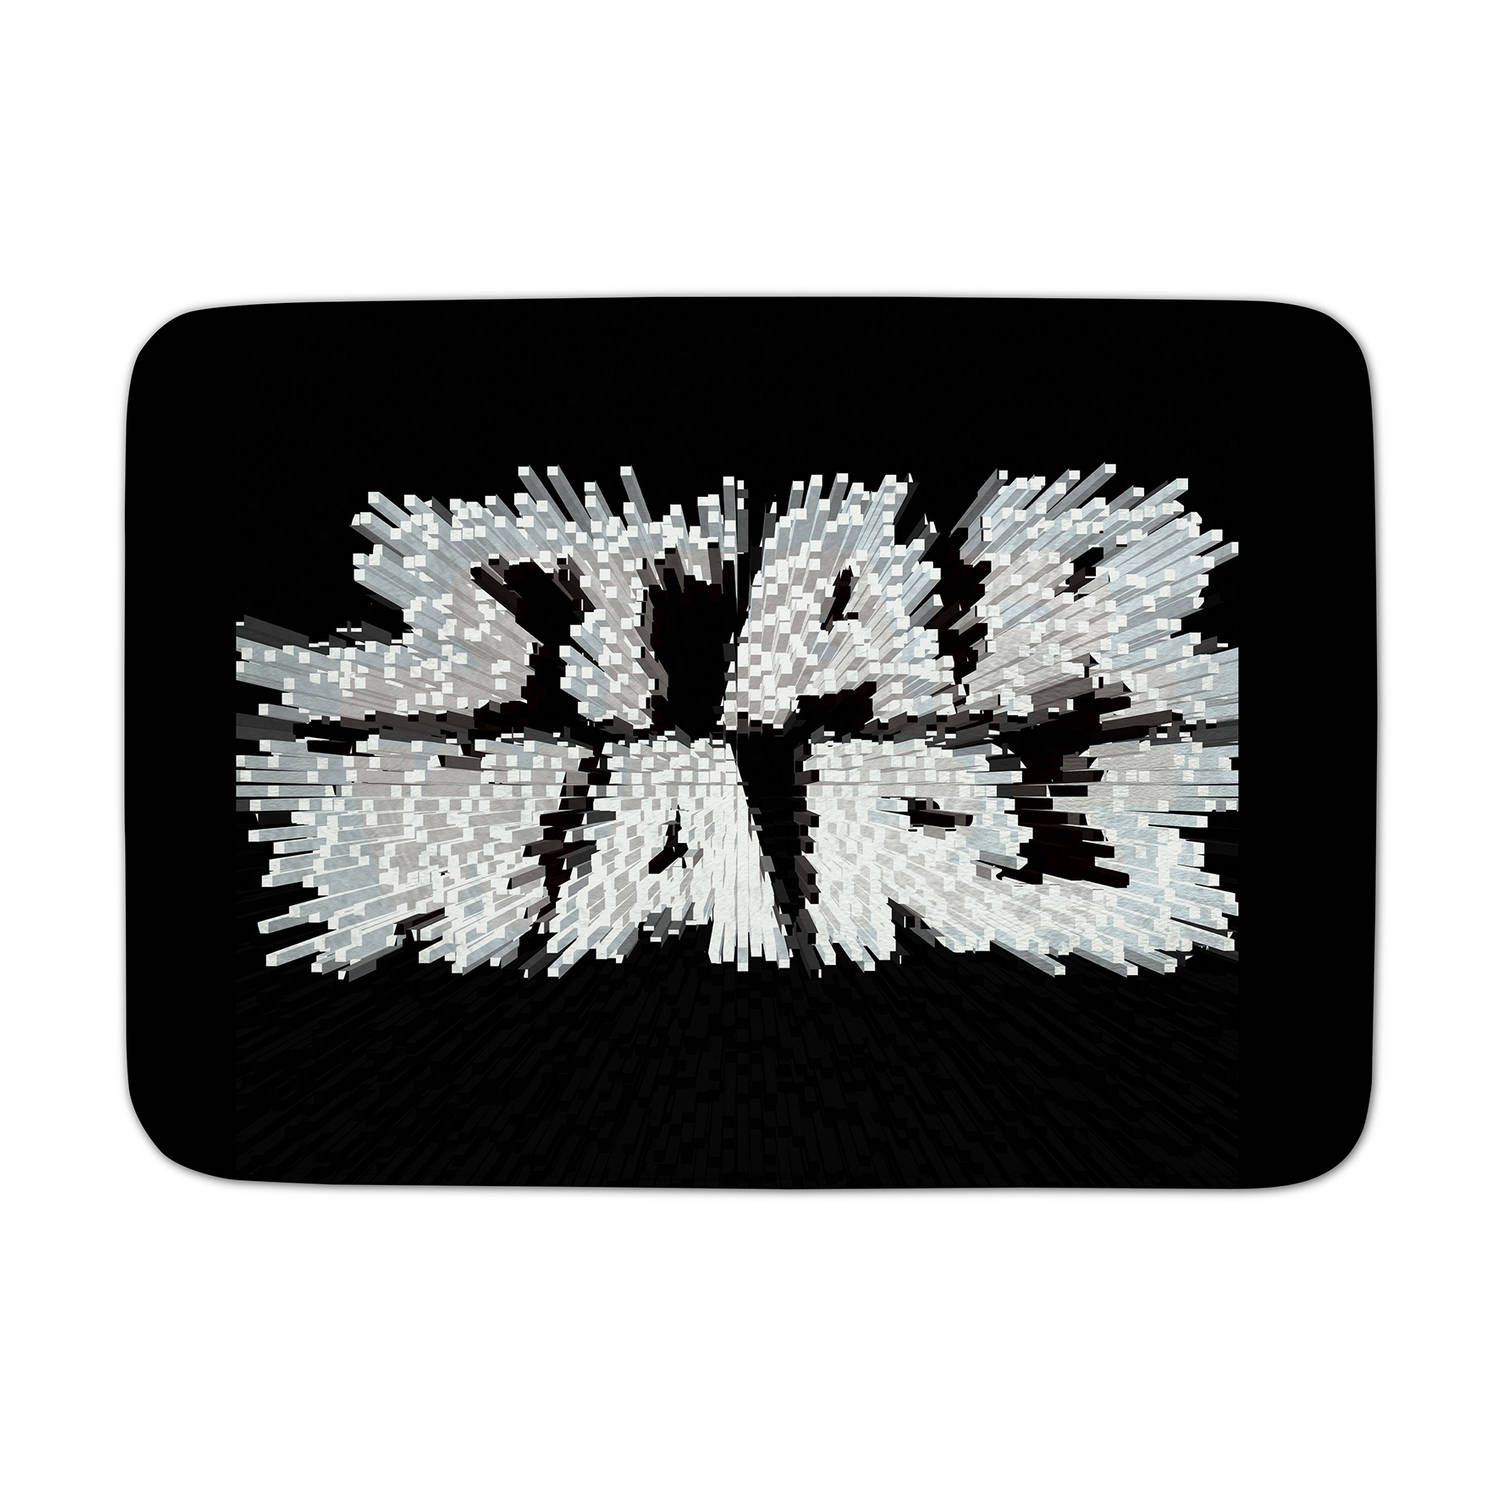 House of Kids speelkleed Star Wars zwart 70 x 95 cm